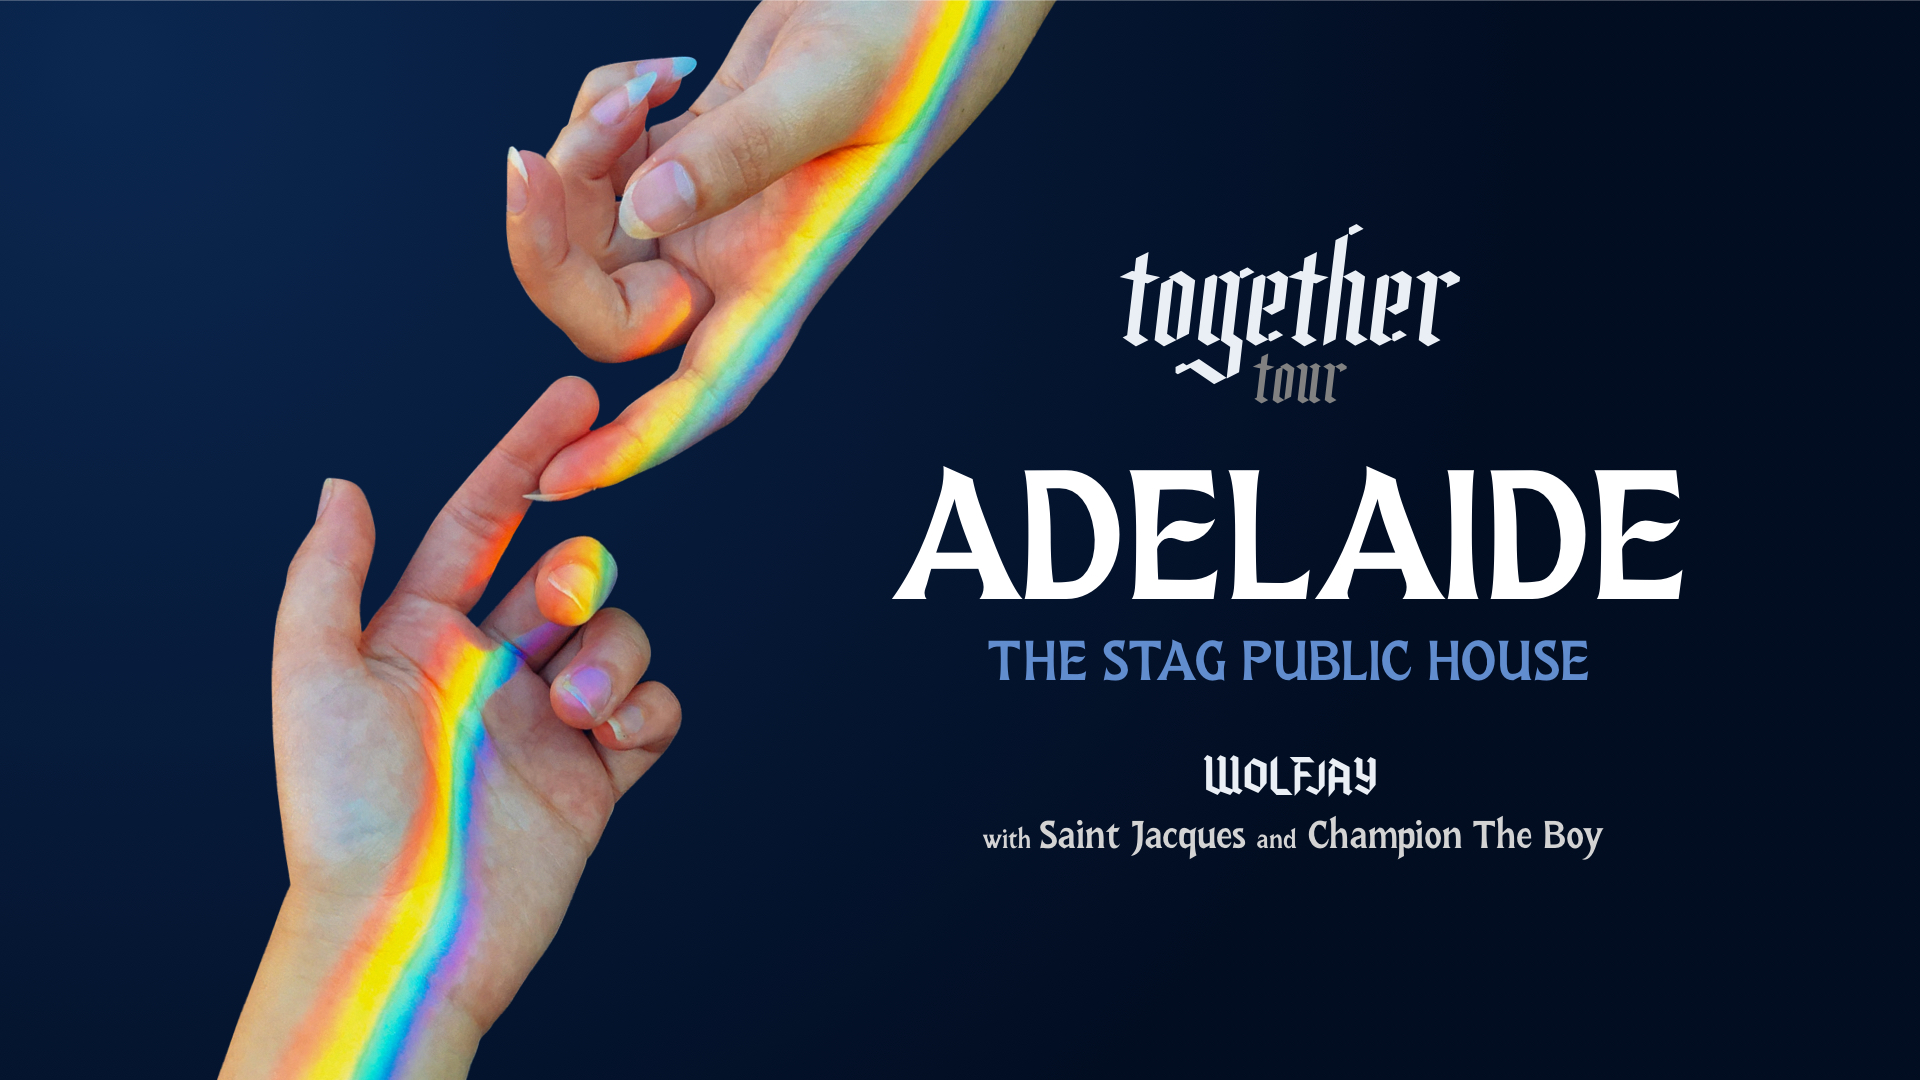 Together Tour - Adelaide Facebook Event Banner.jpg